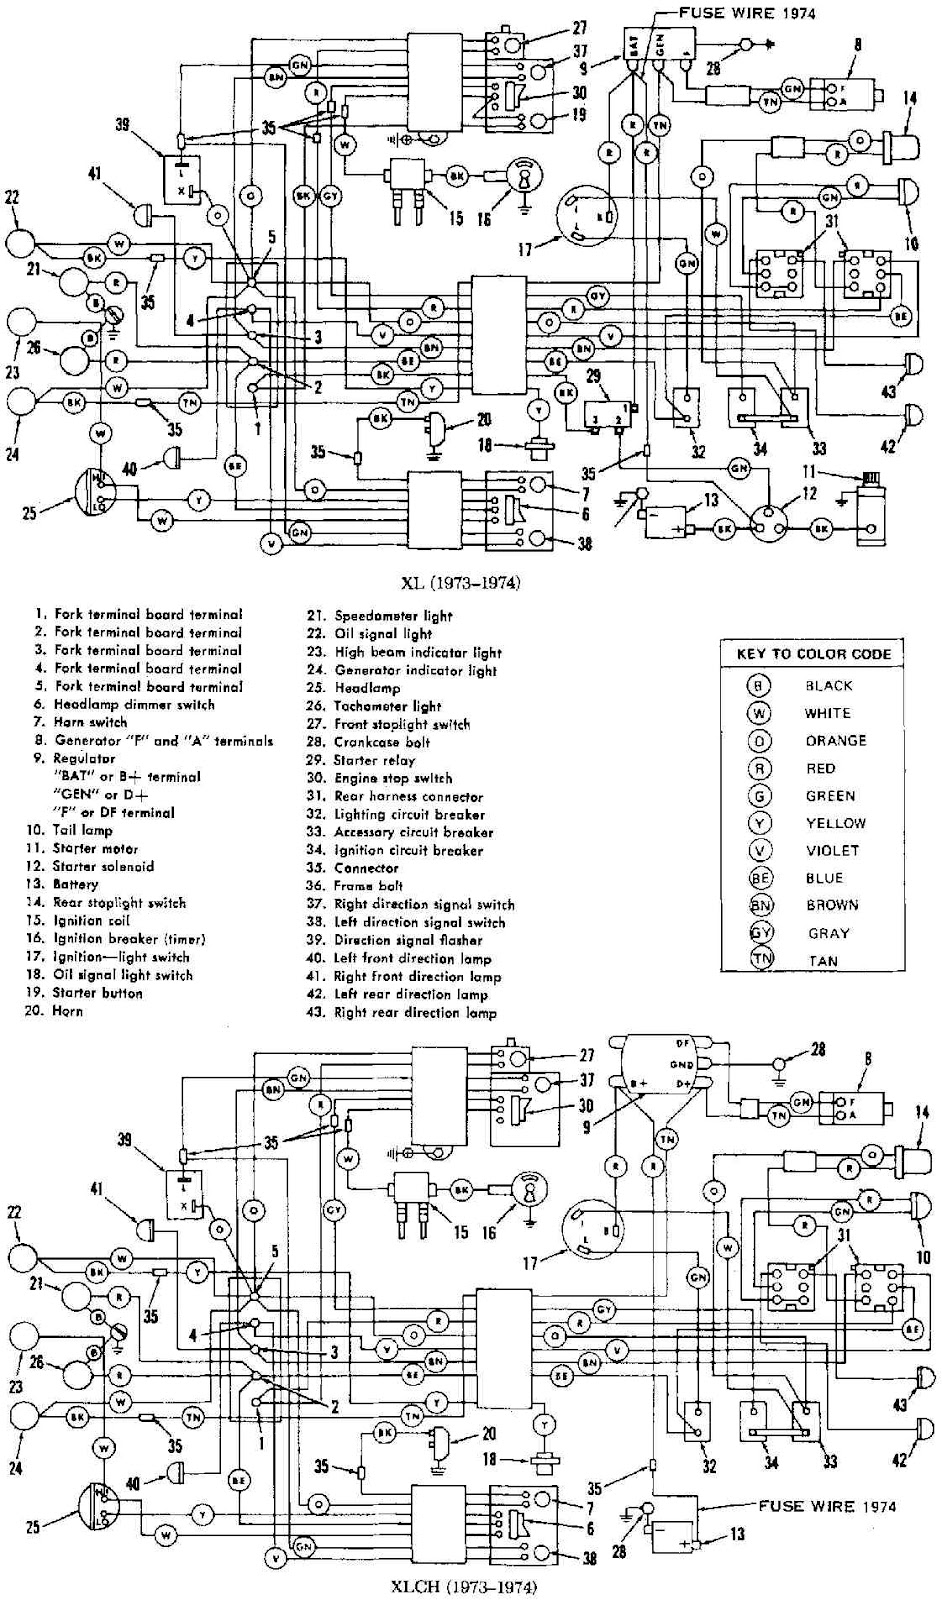 medium resolution of 1974 ironhead wiring diagram images gallery harley davidson xl xlch 1973 1974 motorcycle electrical